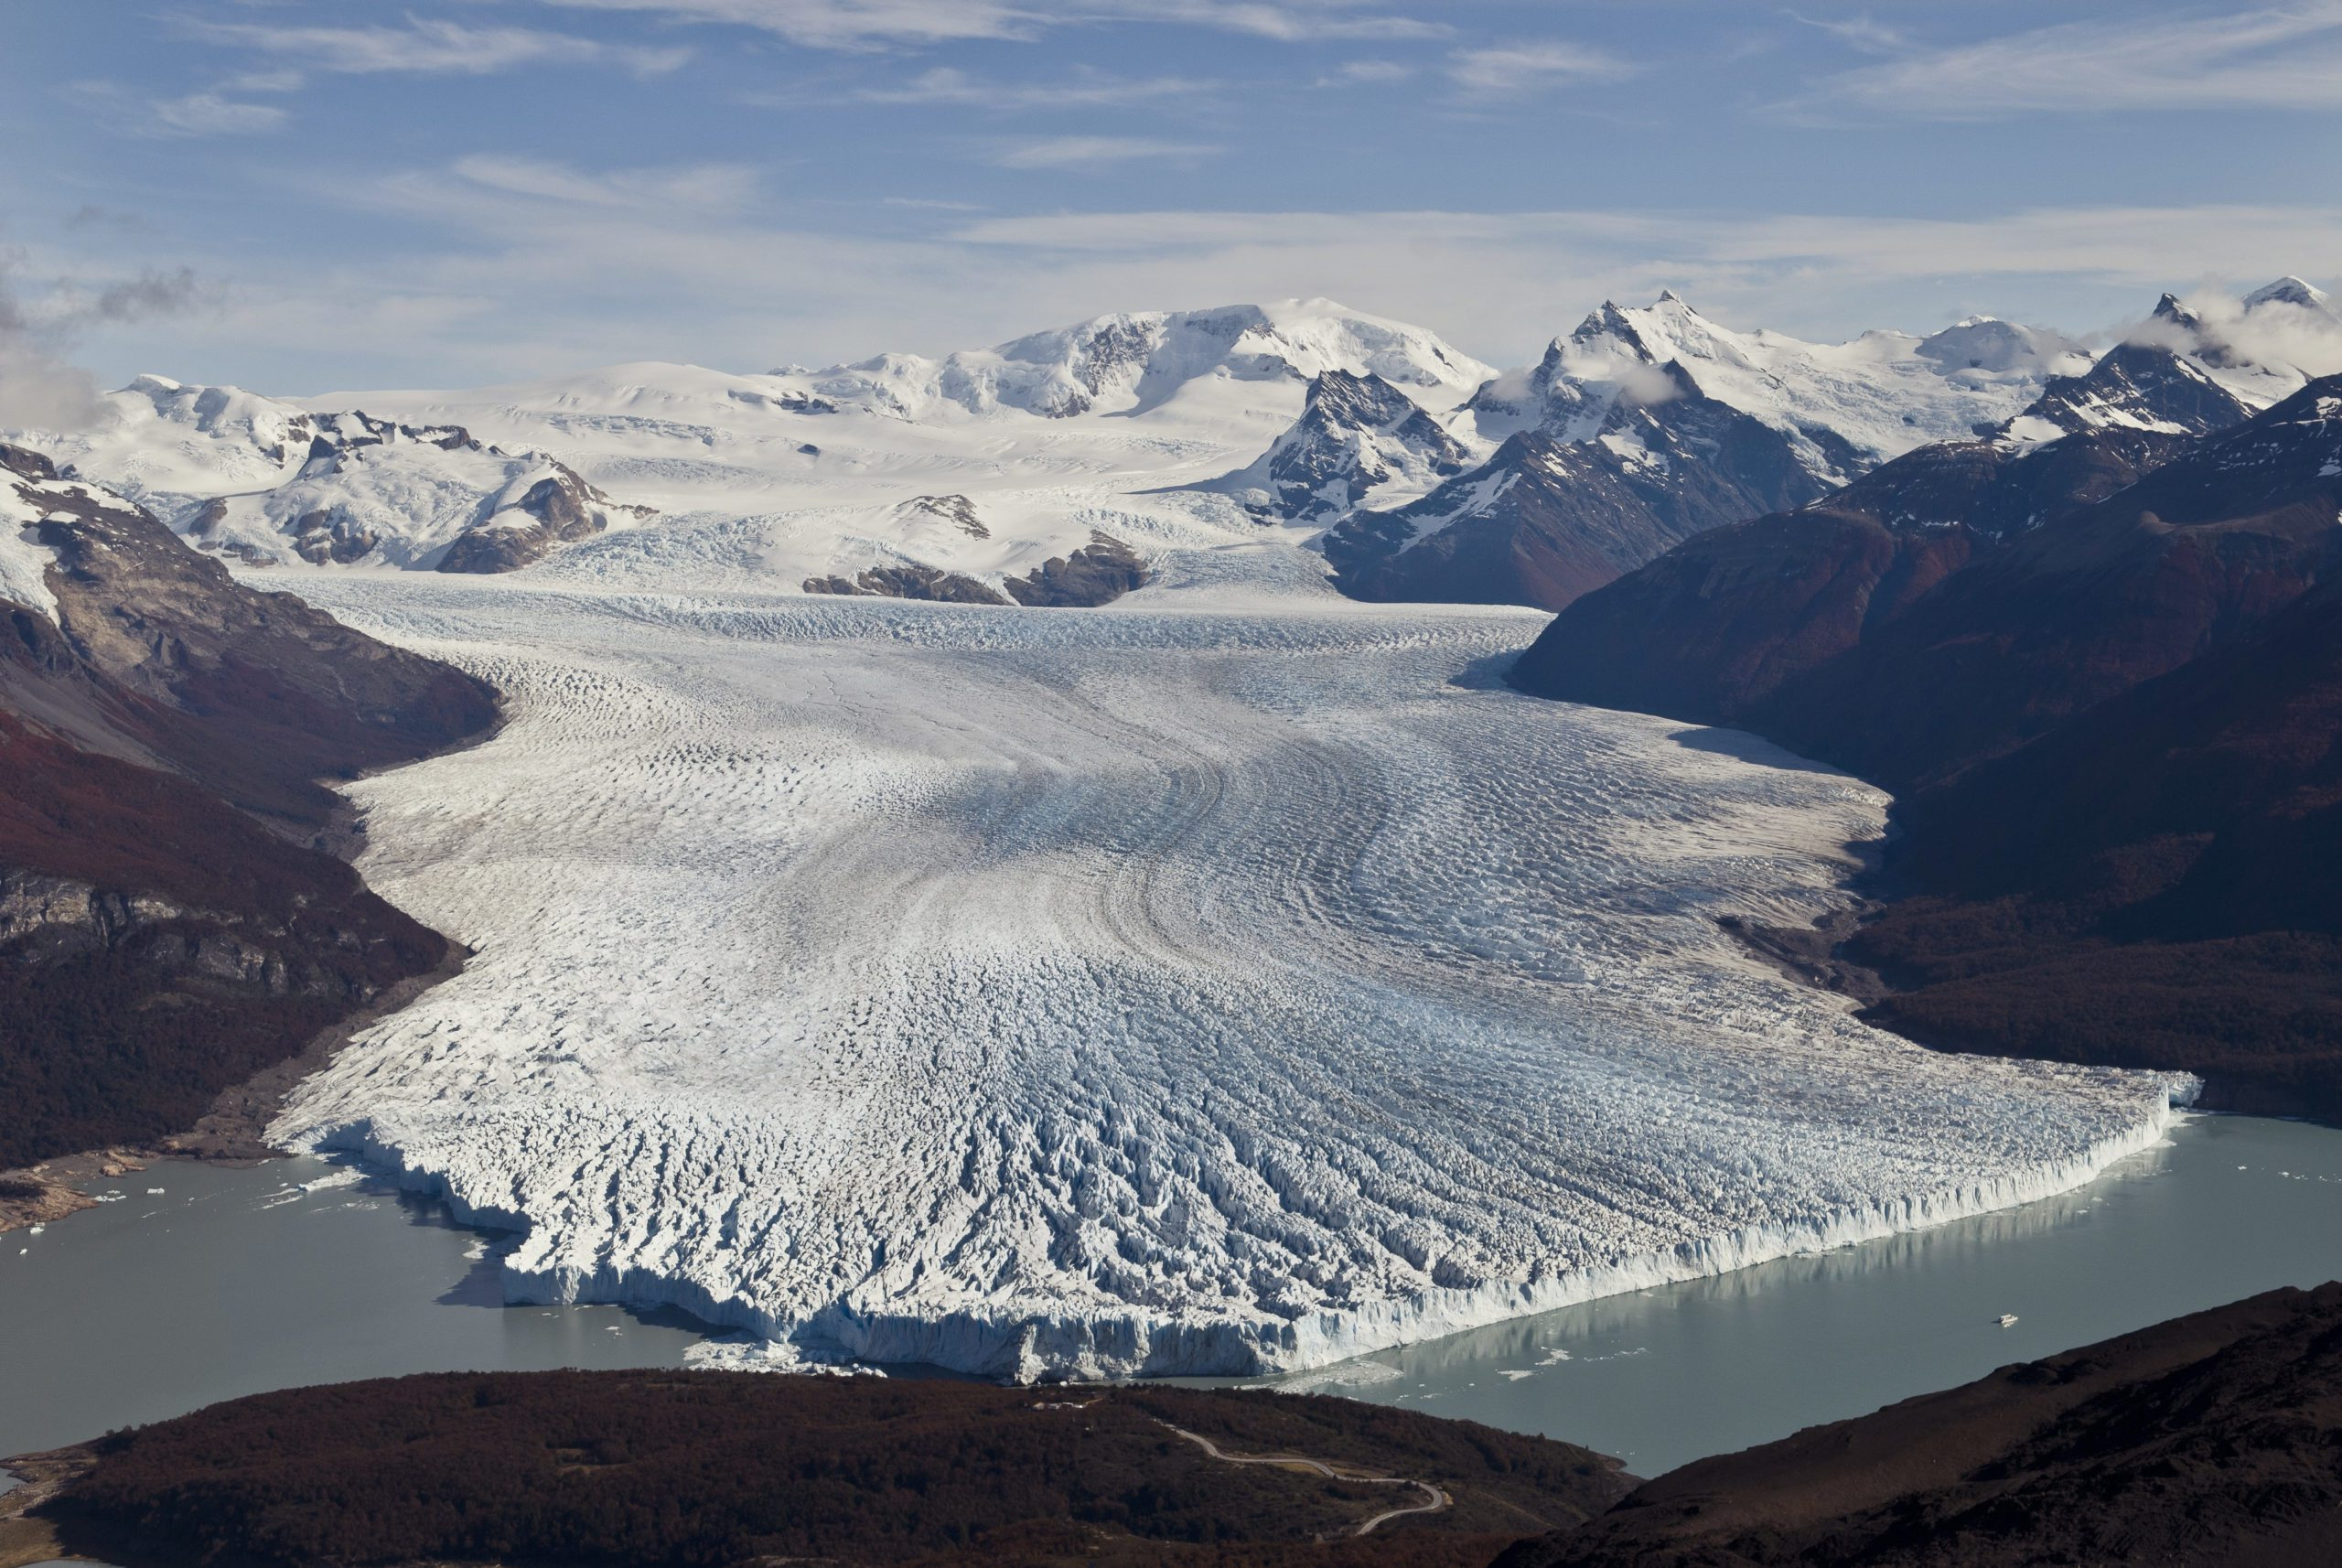 large glacier spanning into the mountains